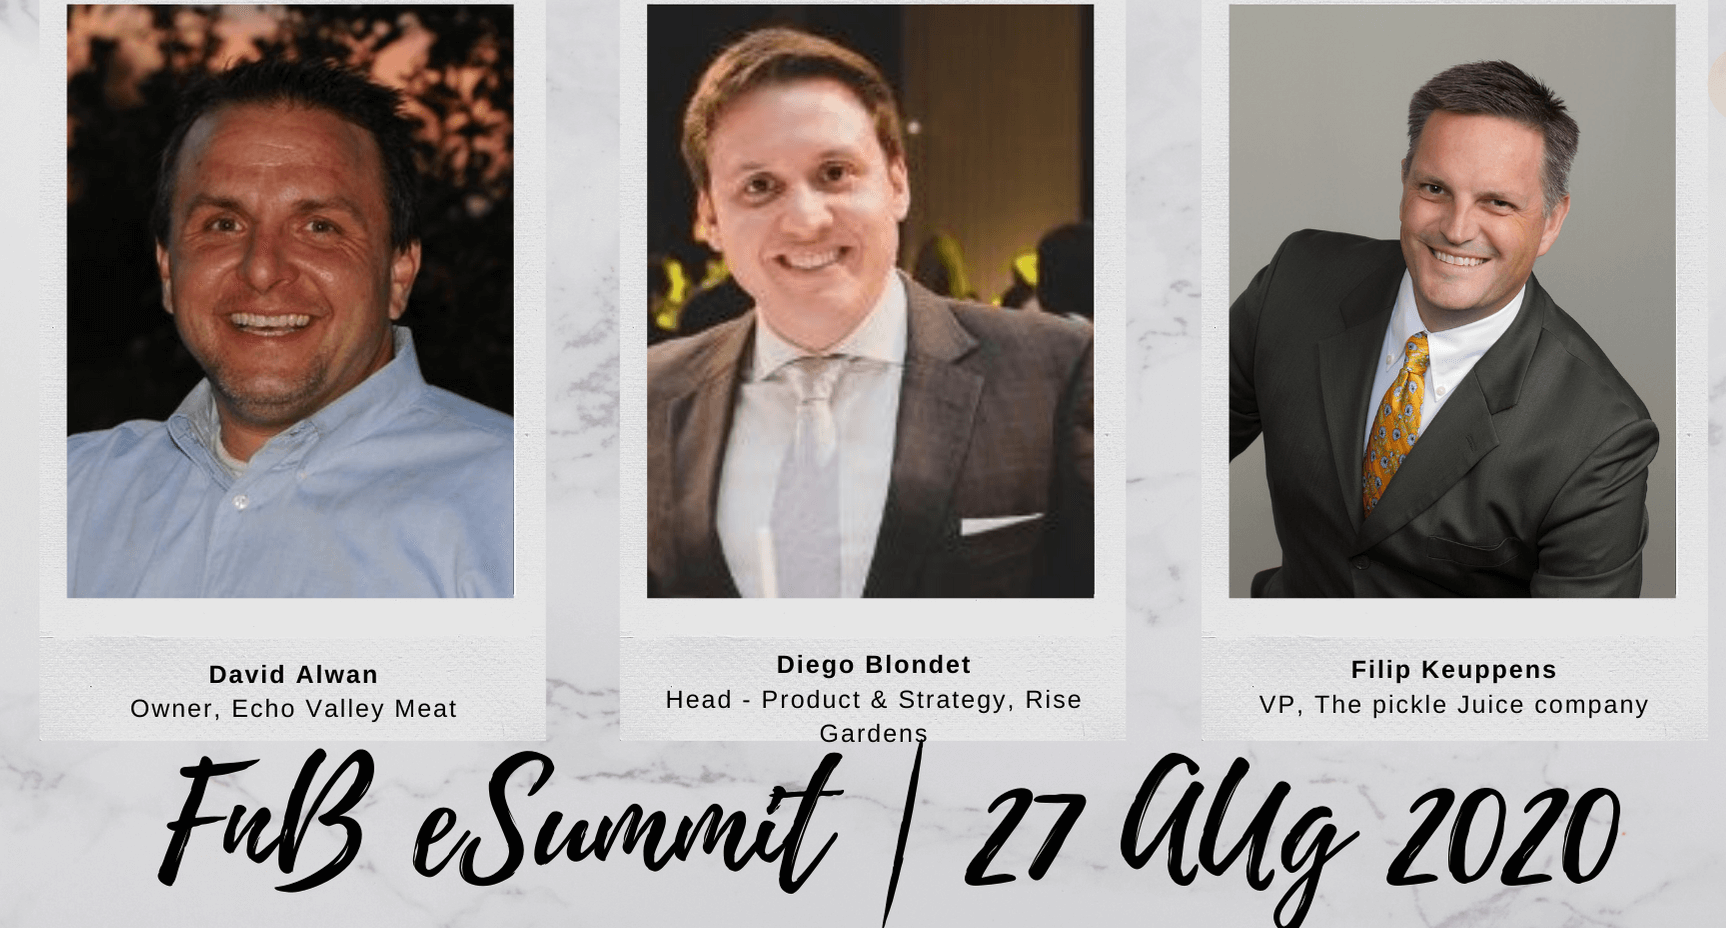 Day 4 – Session 1: F&B e-Summit 2020 (Aug 27th, 2020)